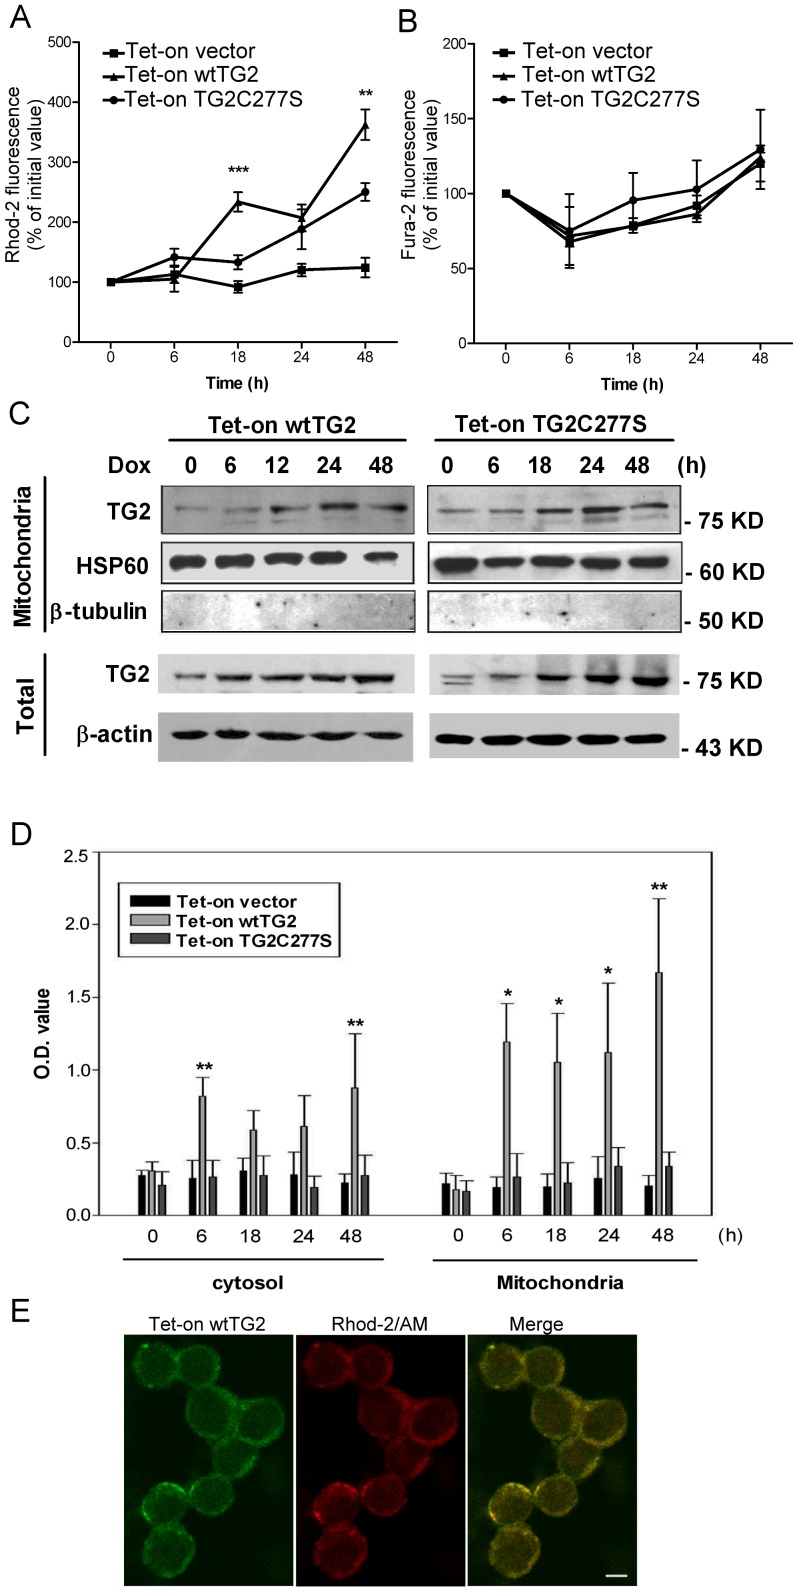 Overexpressed wtTG2 appears in the mitochondria and induces enhanced mitochondrial Ca 2+ accumulation. (A) Time dependent changes in the mitochondrial Ca 2+ concentrations of Tet-on vector, Tet-on wtTG2 and Tet-on TG2C277S cells following Dox (50 µM) treatment detected by Rhod-2/AM. (B) Time dependent changes in the cytosolic Ca 2+ concentrations of Tet-on vector, Tet-on wtTG2 and Tet-on TG2C277S cells following Dox (50 µM) treatment detected by <t>Fura-2/AM.</t> (C) Time dependent changes in the mitochondrial and cytoplasmic TG2 expressions of Tet-on wtTG2 and Tet-on TG2C277S cells following Dox (50 µM) treatment detected by Western blot analysis. Mitochondrial HSP60 and cytoplasmic β-actin were used as loading controls; while β-tubulin was used to check for cytoplasmic contamination of mitochondria. (D) Time dependent changes in the mitochondrial and cytoplasmic TG2 activities of Tet-on vector, Tet-on wtTG2 and Tet-on TG2C277S cells following Dox (50 µM) treatment. (E) Confocal images taken at 16 h following Dox treatment show Tet-on wtTG2 cells expressing TG2 (green) colocalized with the mitochondrial calcium indicator Rhod-2/AM (red). Scale bar = 5 µM. All the data presented represent mean±S.D. of at least three determinations. Significantly different from the TG2C277S cell line detected at the same time point (* P